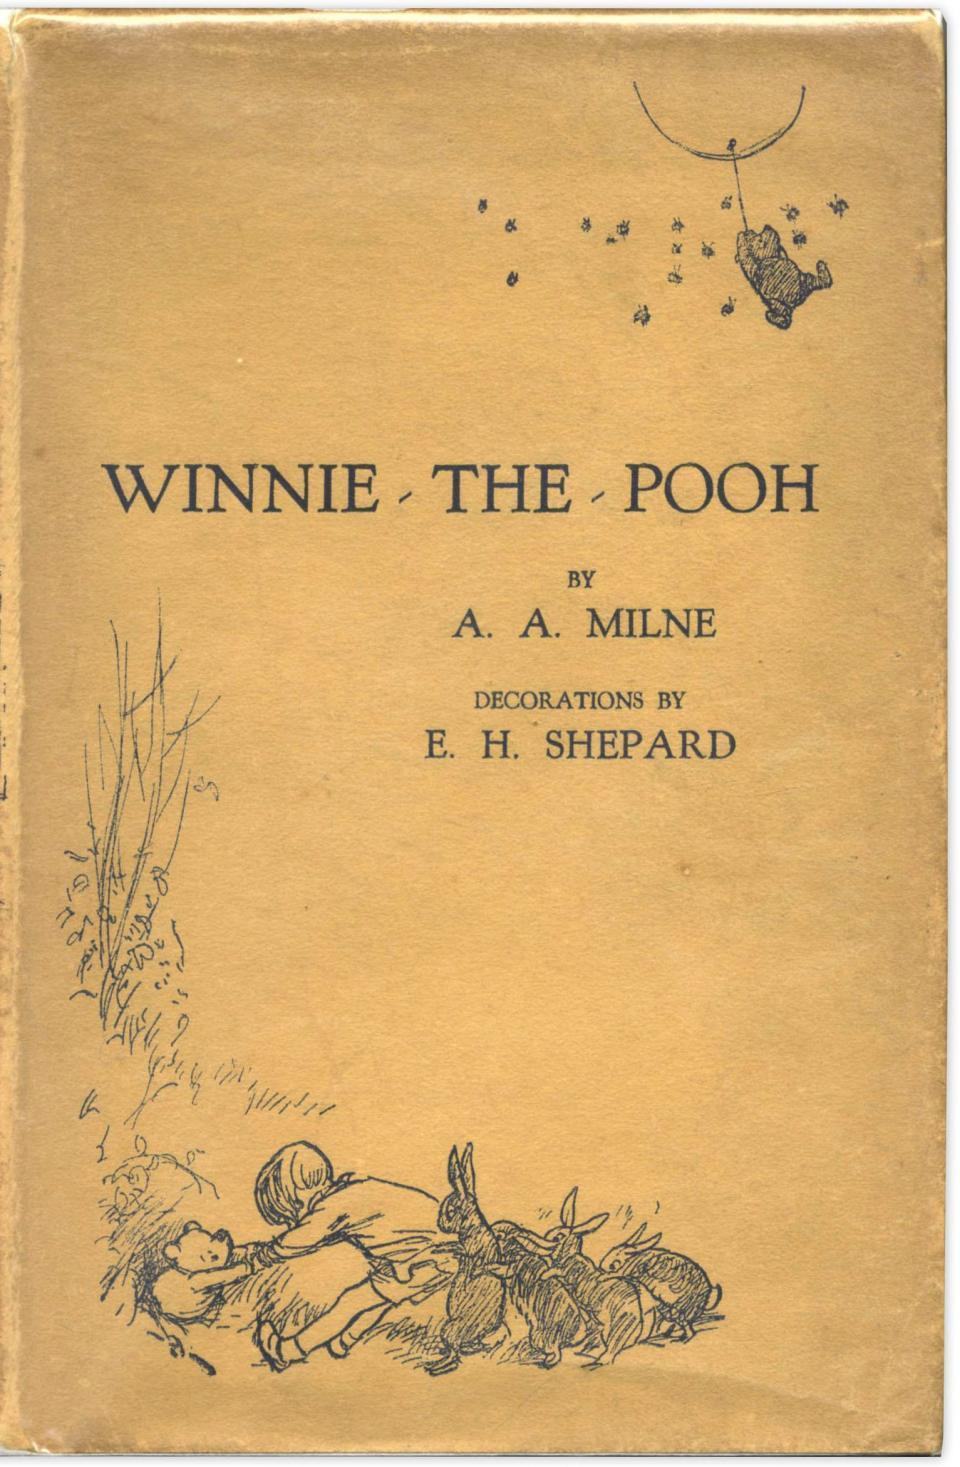 Prince Harry has purchased a first edition of the famous novel, Winnie-the-Pooh, for £8,000.